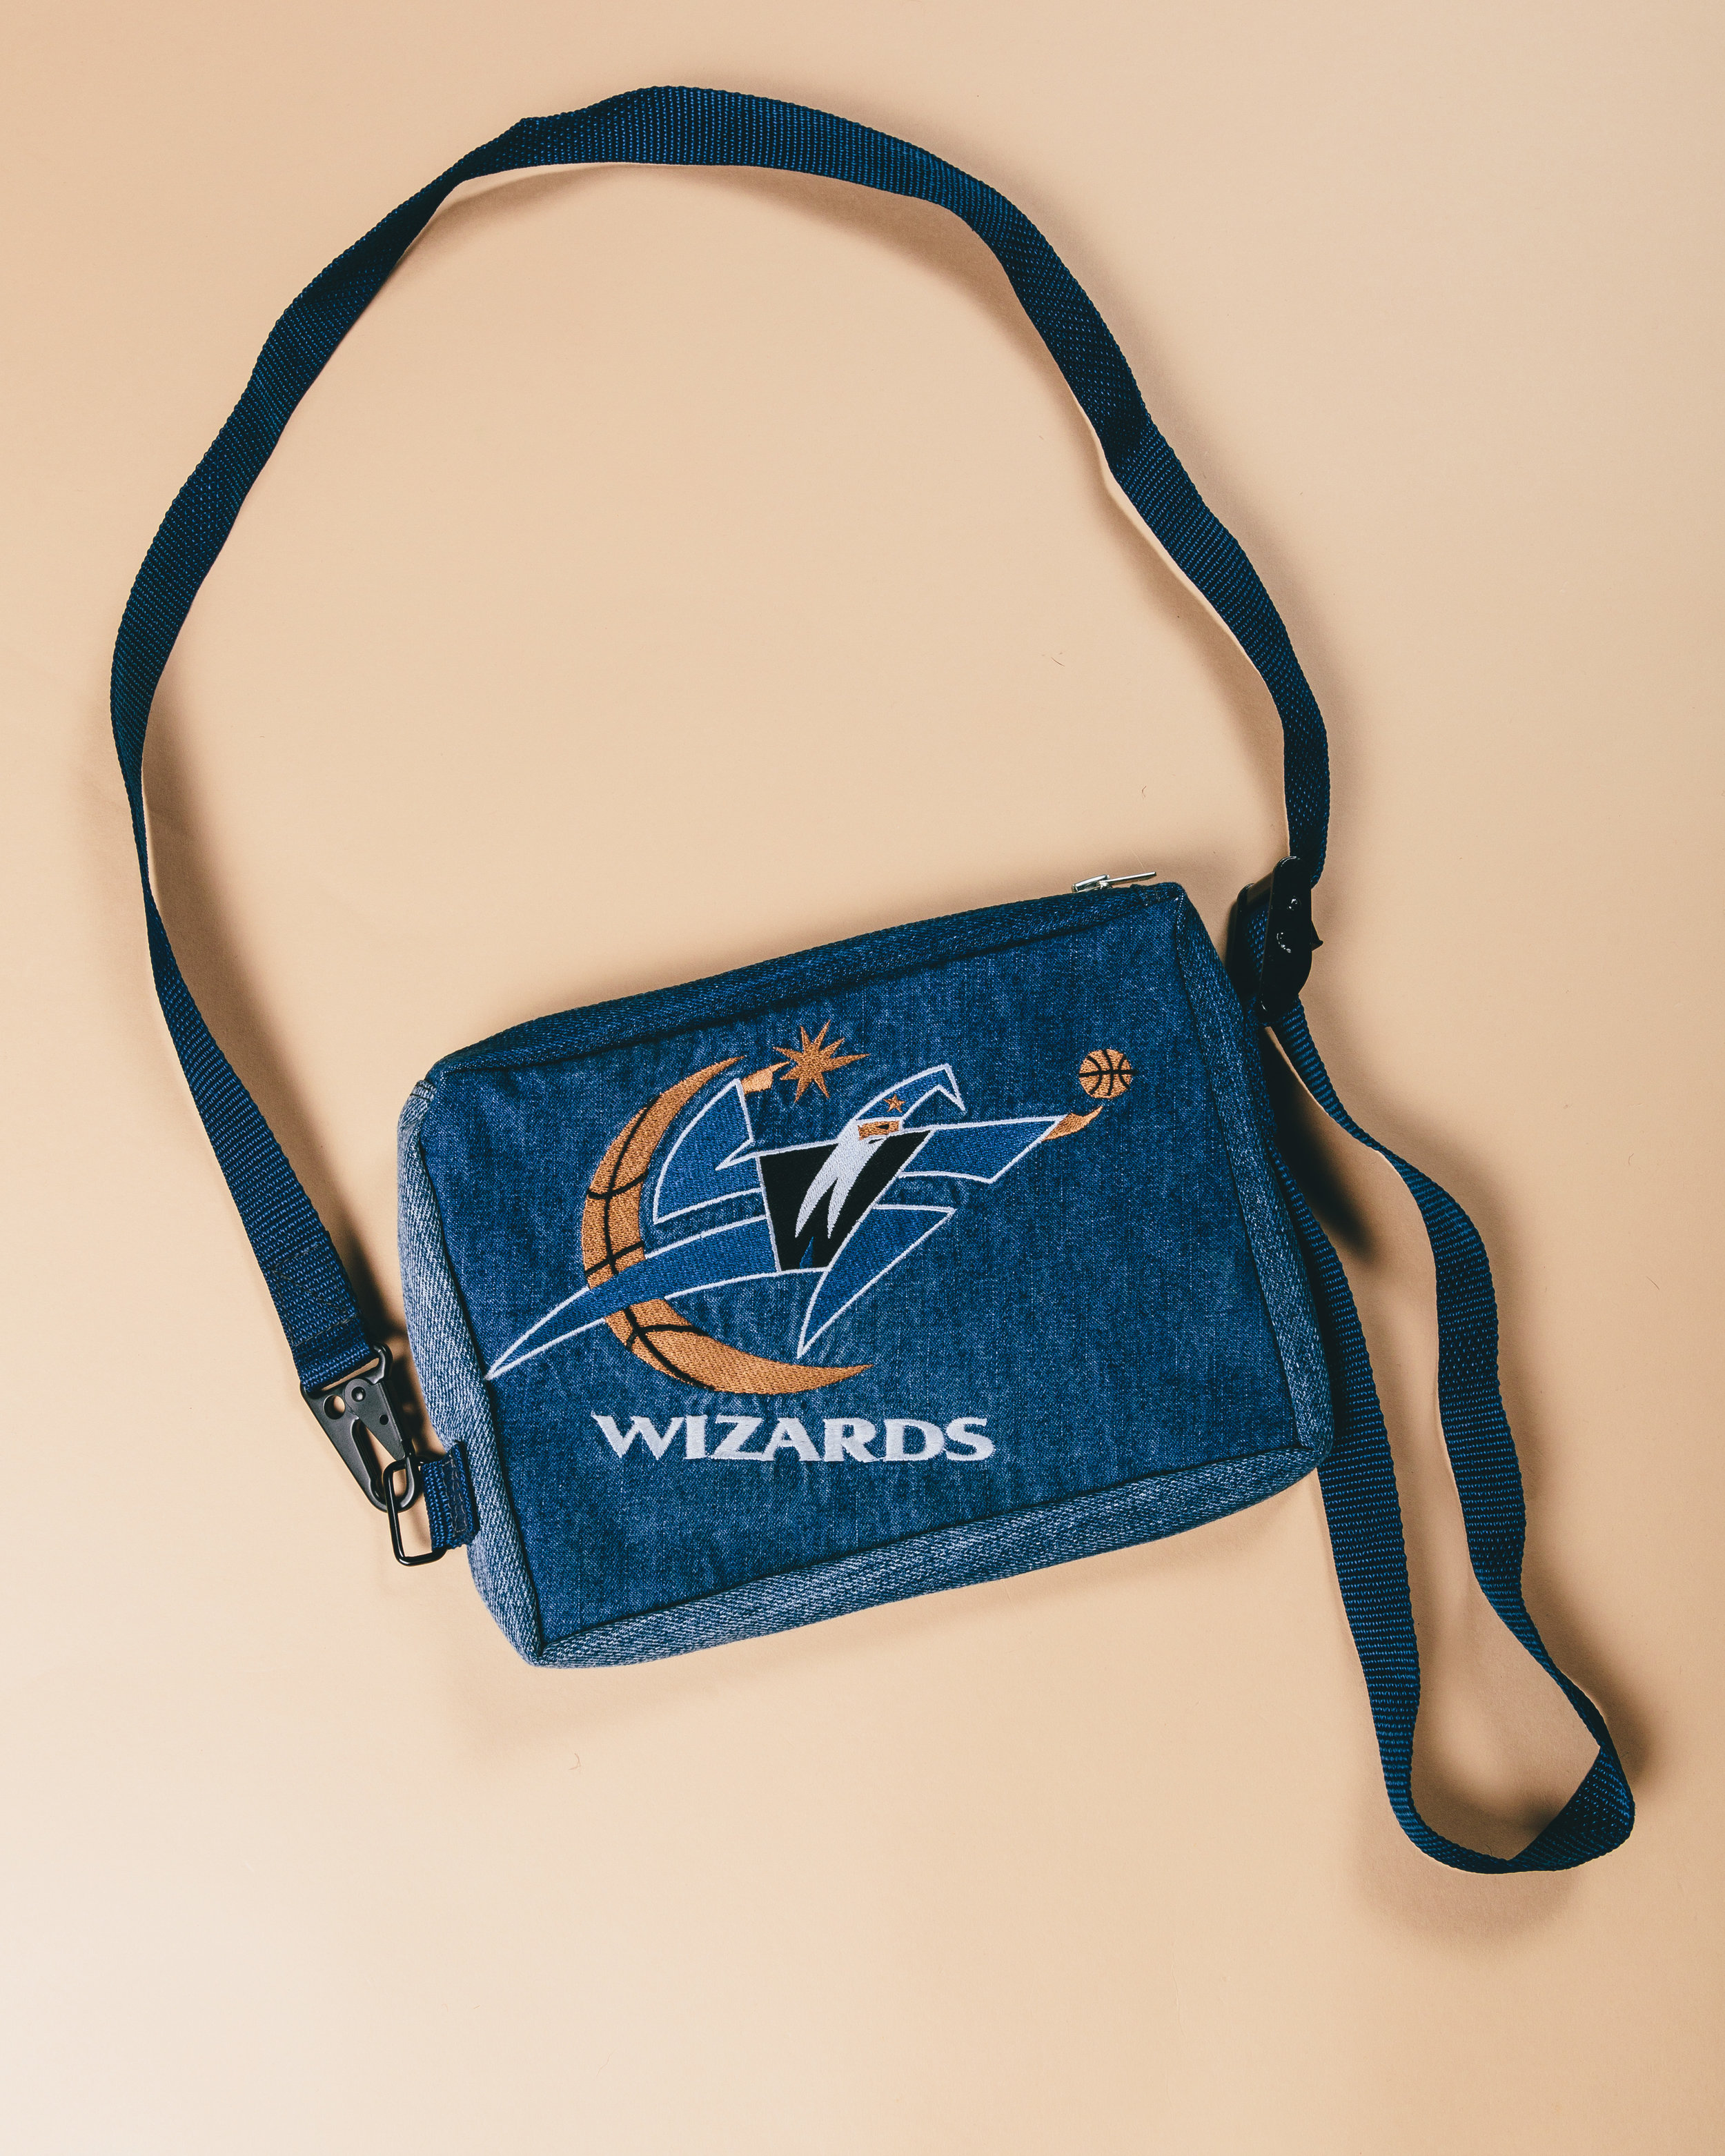 Wizards Crossbody - Tactical style chest bag made from reconstructing a pair of early 2000's denim.